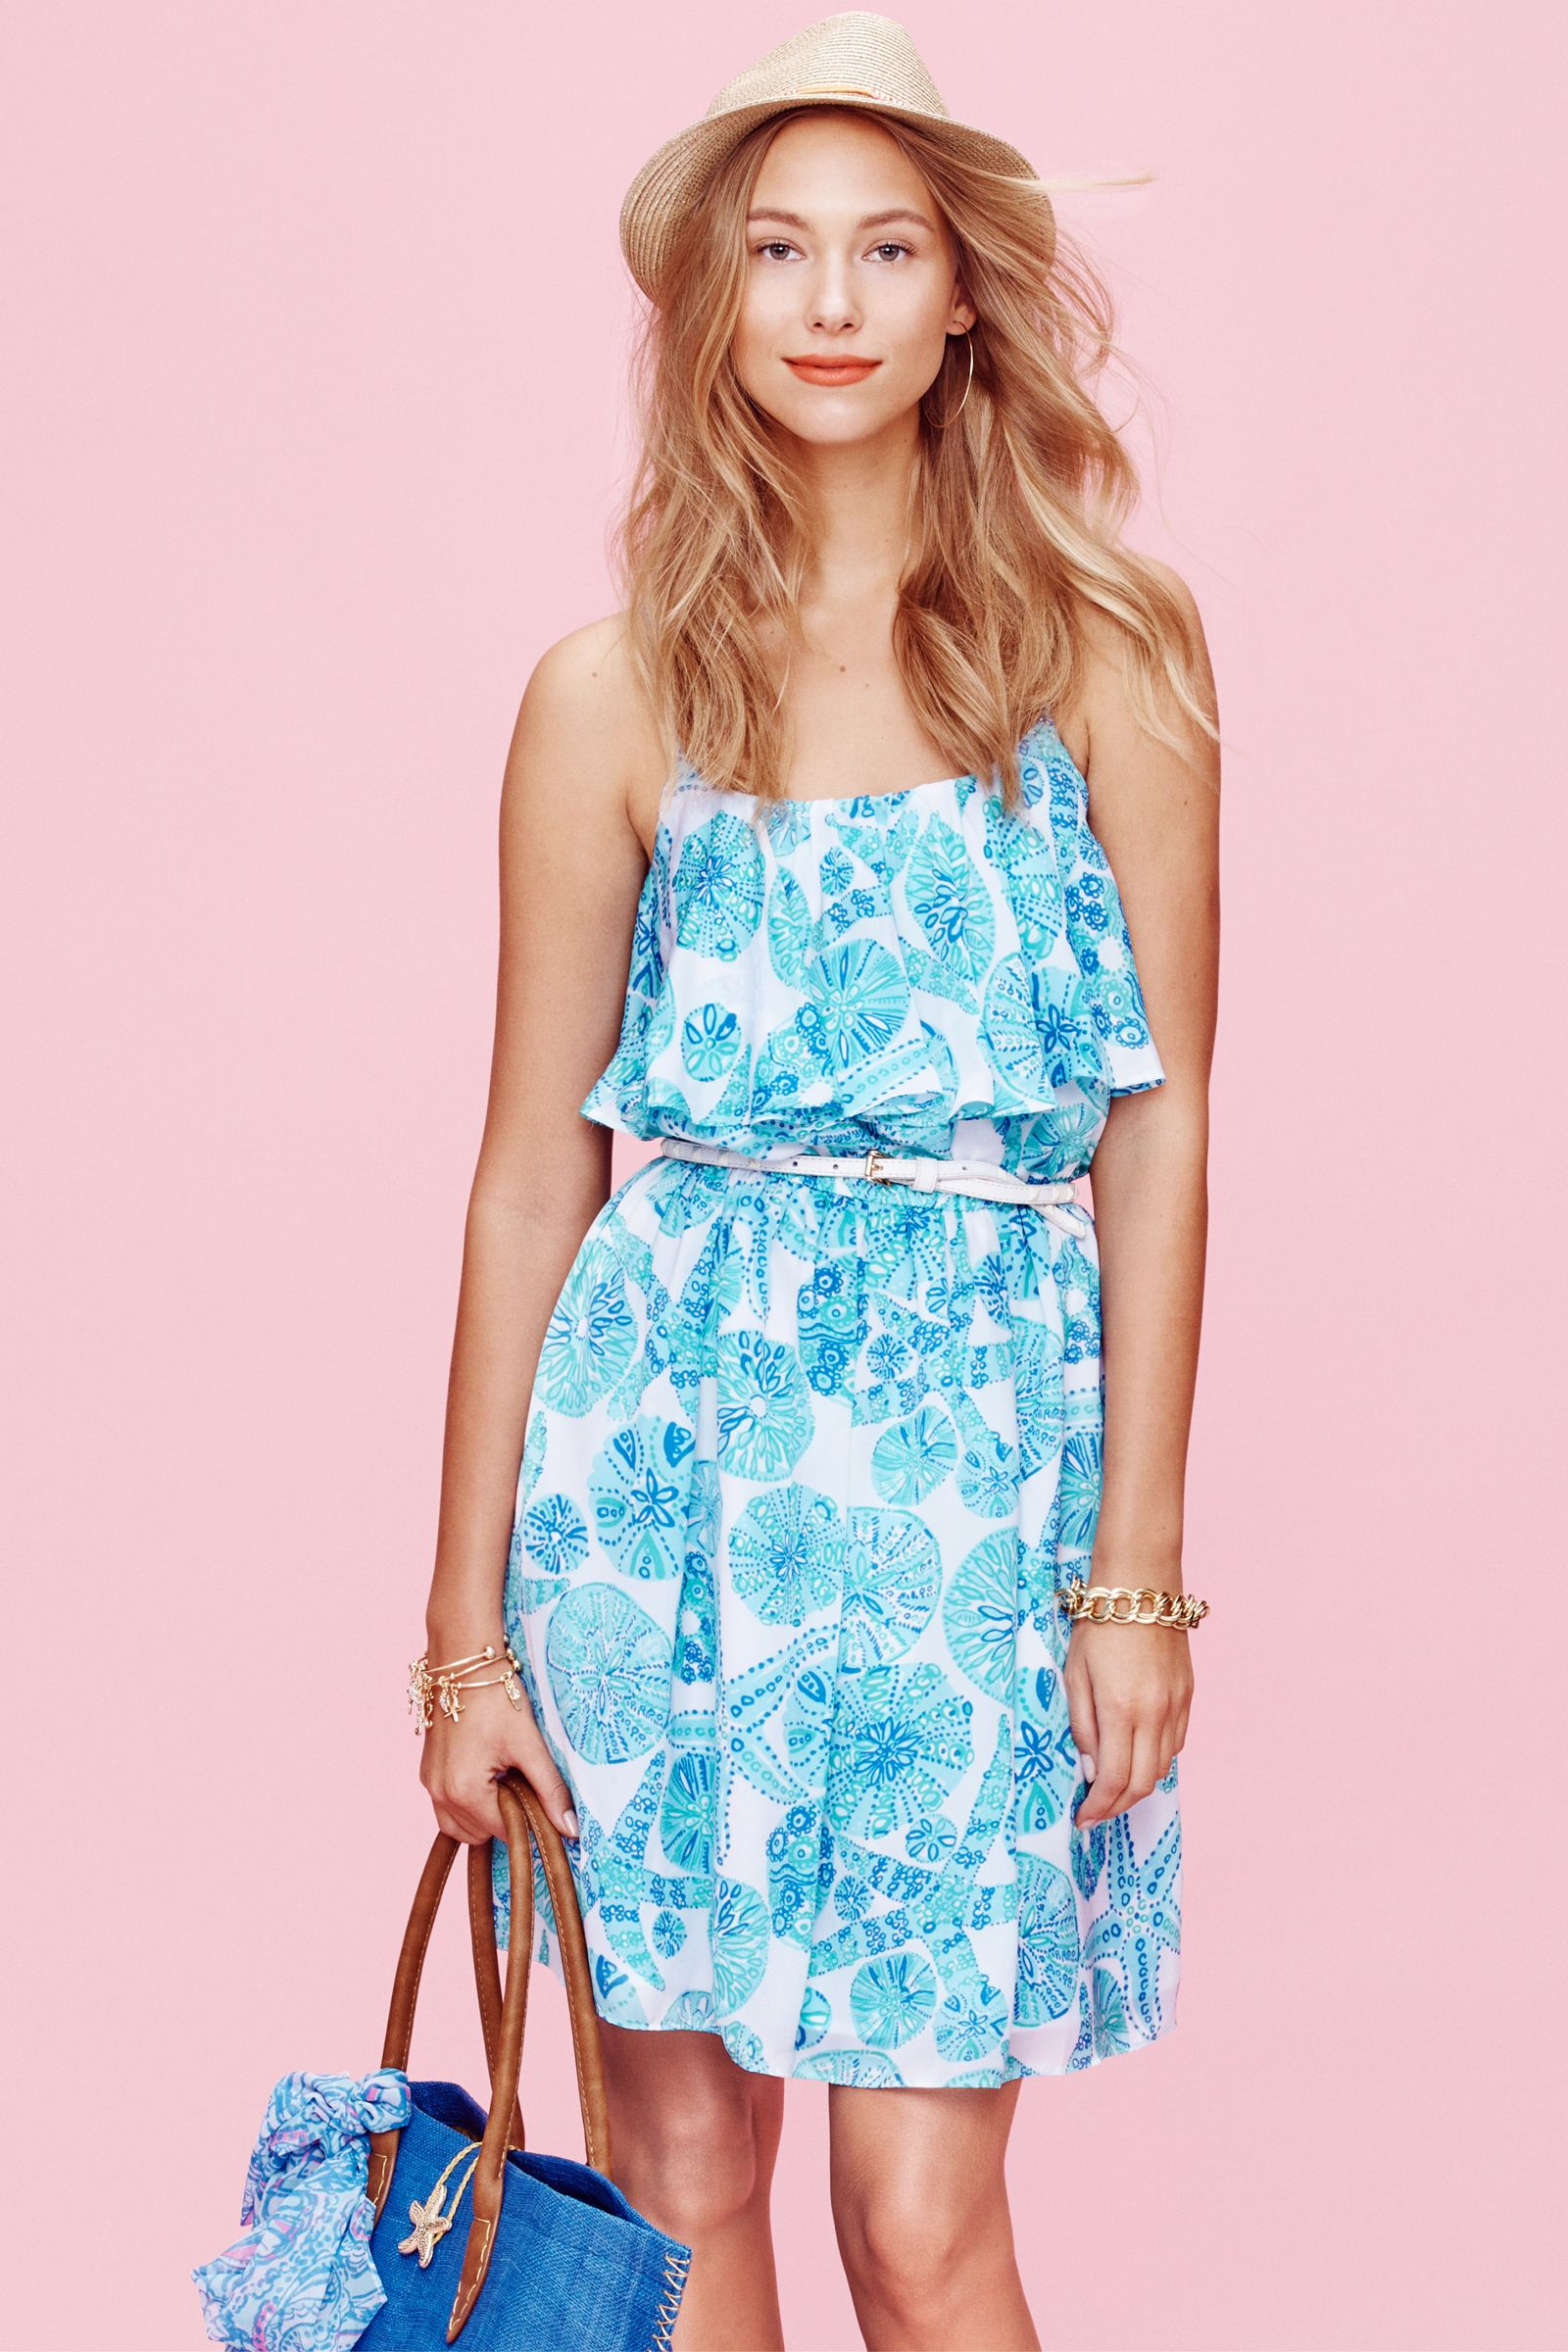 04da89e5eba561 Exclusive: See the Complete Lilly Pulitzer x Target Collection